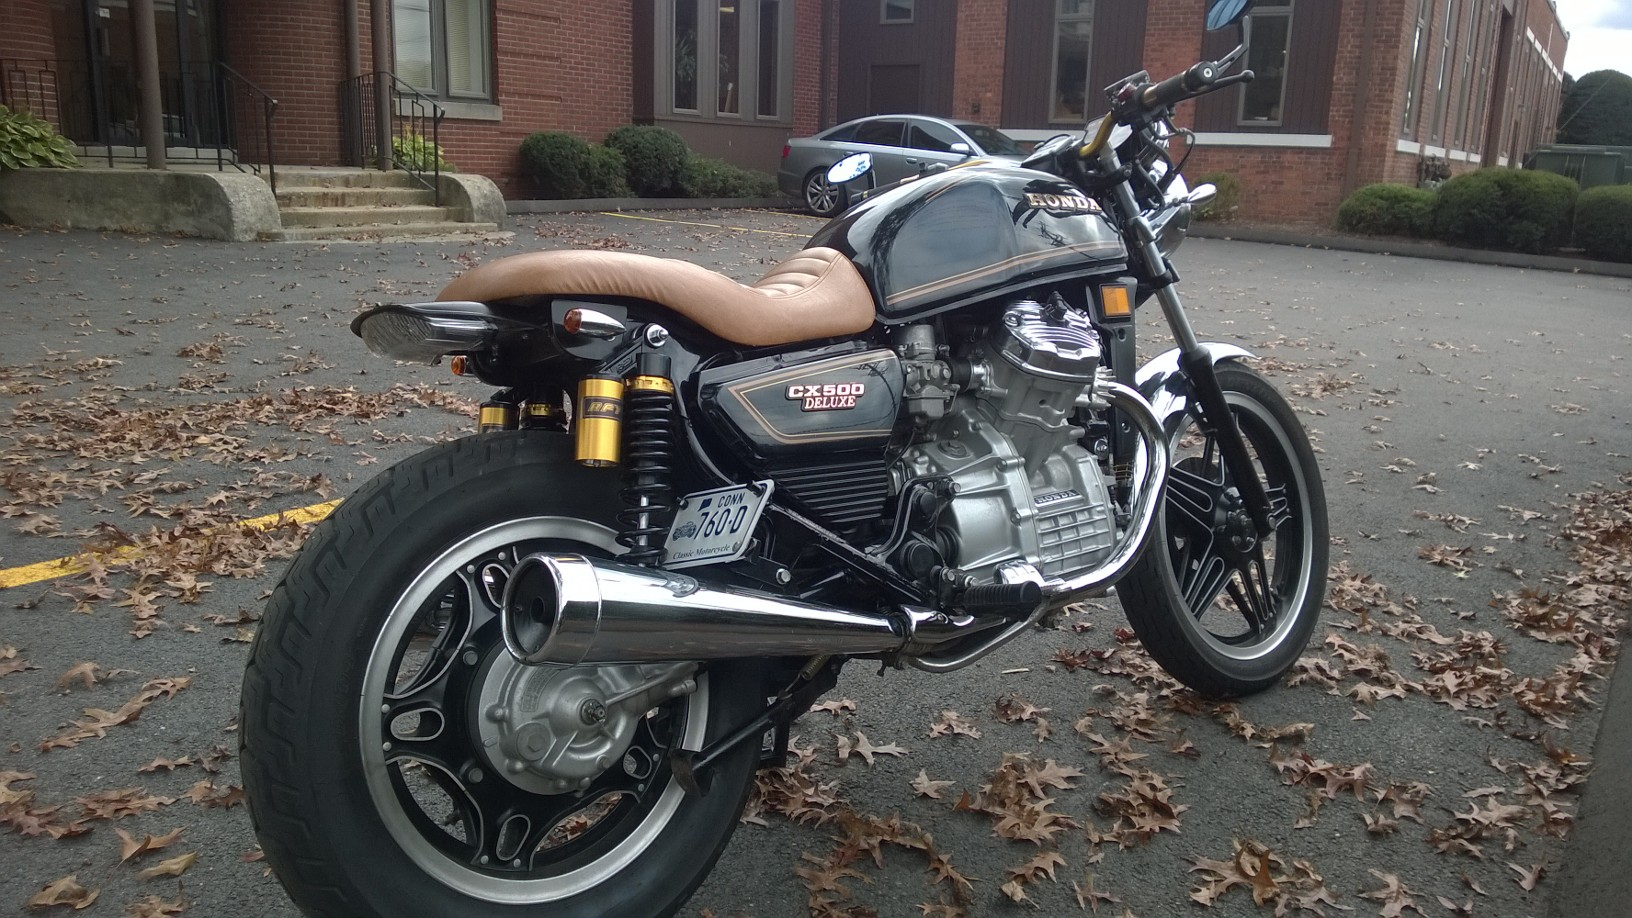 1978 cx500 cafe racer south africa first timer build - page 3